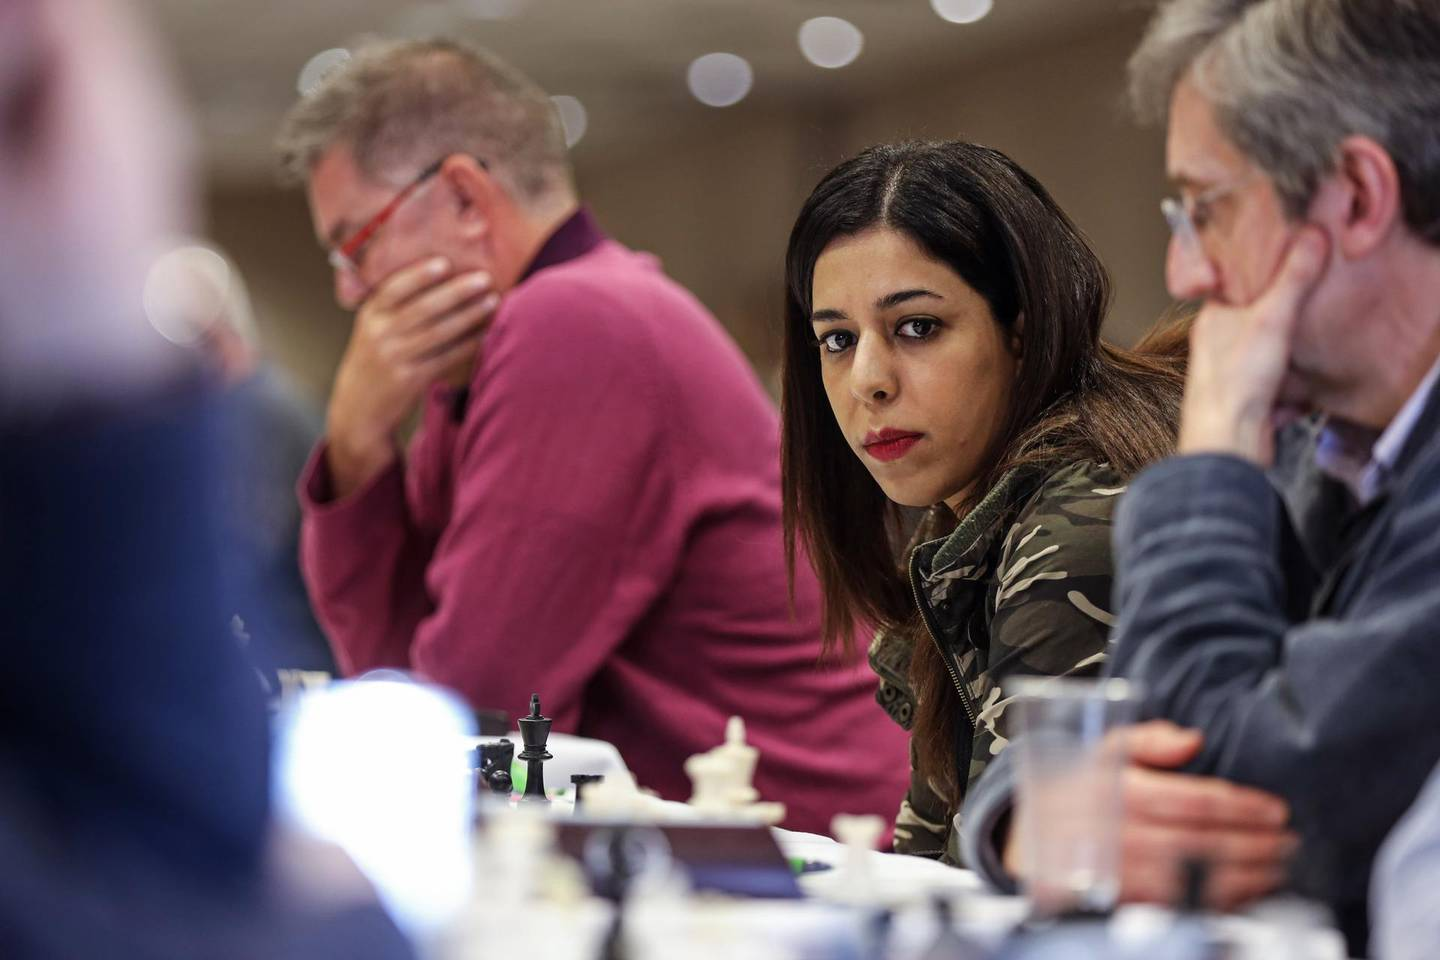 MAIDENHEAD, UNITED KINGDOM - FEBRUARY 8: Iranian chess arbiter Shohreh Bayat competes in a Four Nations Chess League tournament at a Holiday Inn on February 07, 2020 in Maidenhead, England.  Ms. Bayat, an arbiter with the chess governing body FIDE, was presiding over a tournament in China in January when a picture of her appearing not to wear a hijab circulated in Iranian media. Commentary in the press and online accused her of flouting Iranian law, which requires women to wear a headscarf when appearing in public. Seeing this response, Ms. Bayat quickly grew afraid of returning to her country, worried she would be arrested. She is now staying with friends in the United Kingdom, where she says she is considering her options, unsure of what the future holds. (Photo by Hollie Adams/Getty Images)